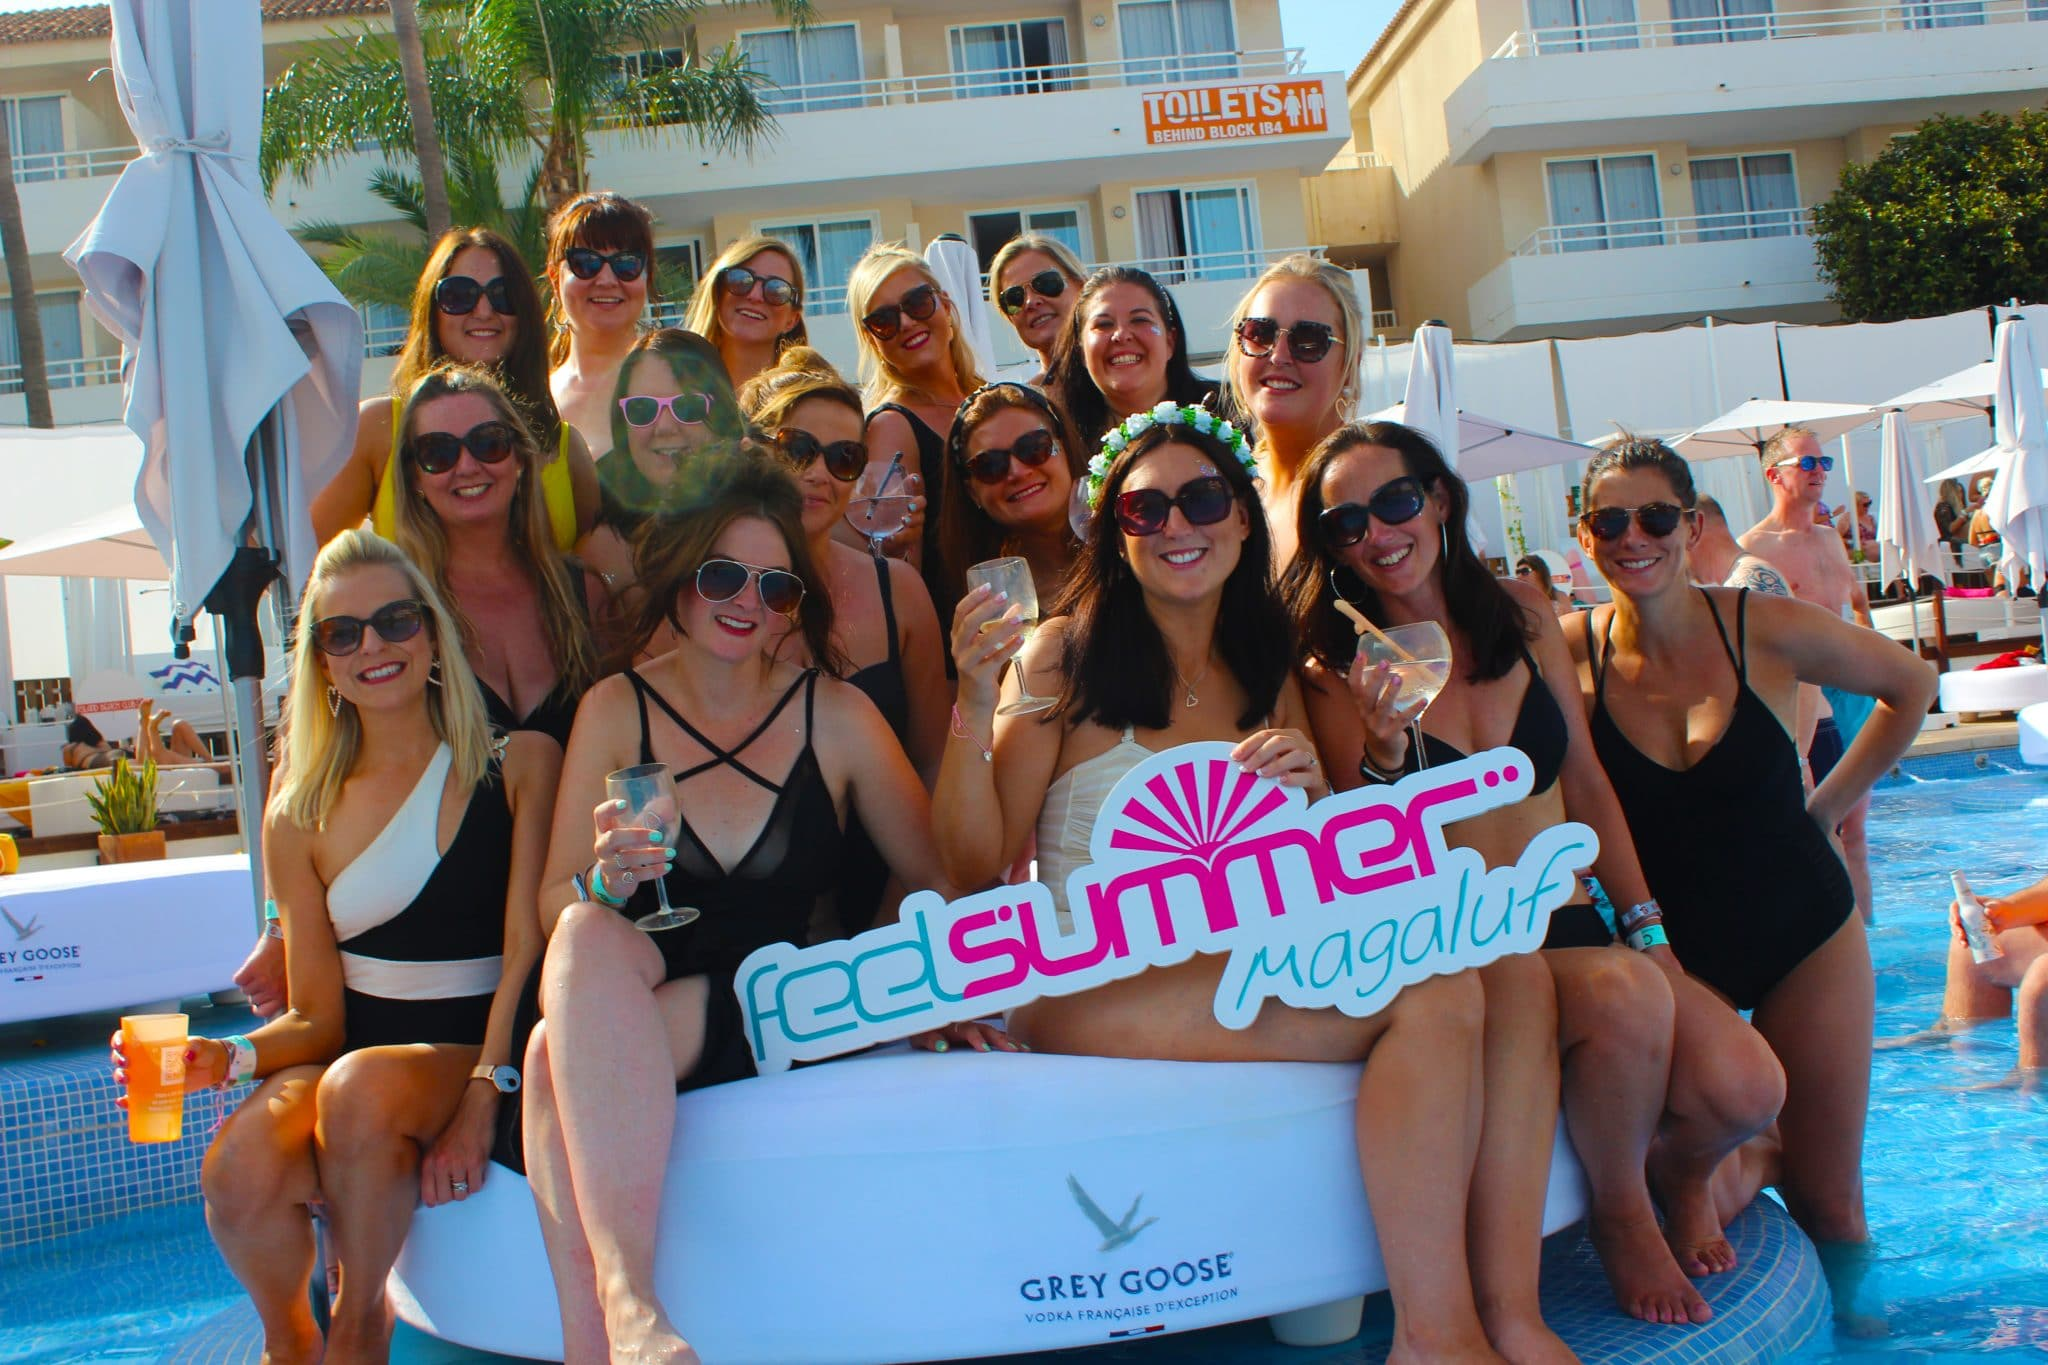 feelsummer-customer-magaluf-events6